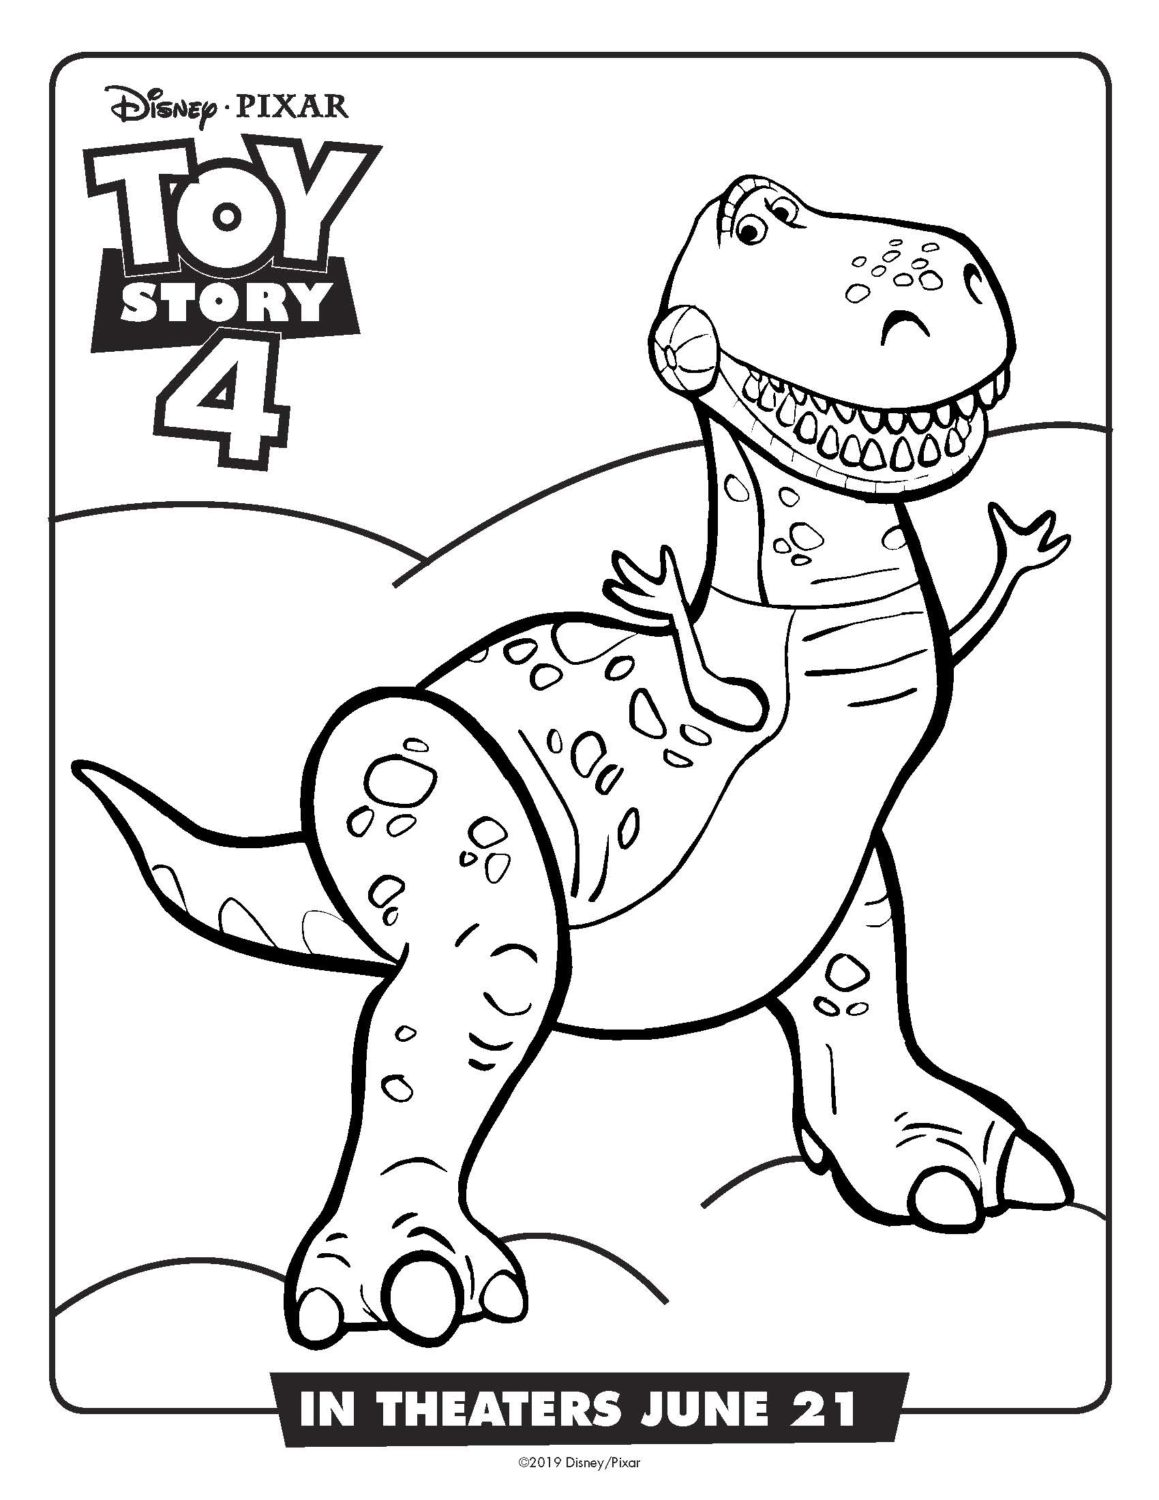 Toy Story 4 Rex Coloring Page and Activity Sheet